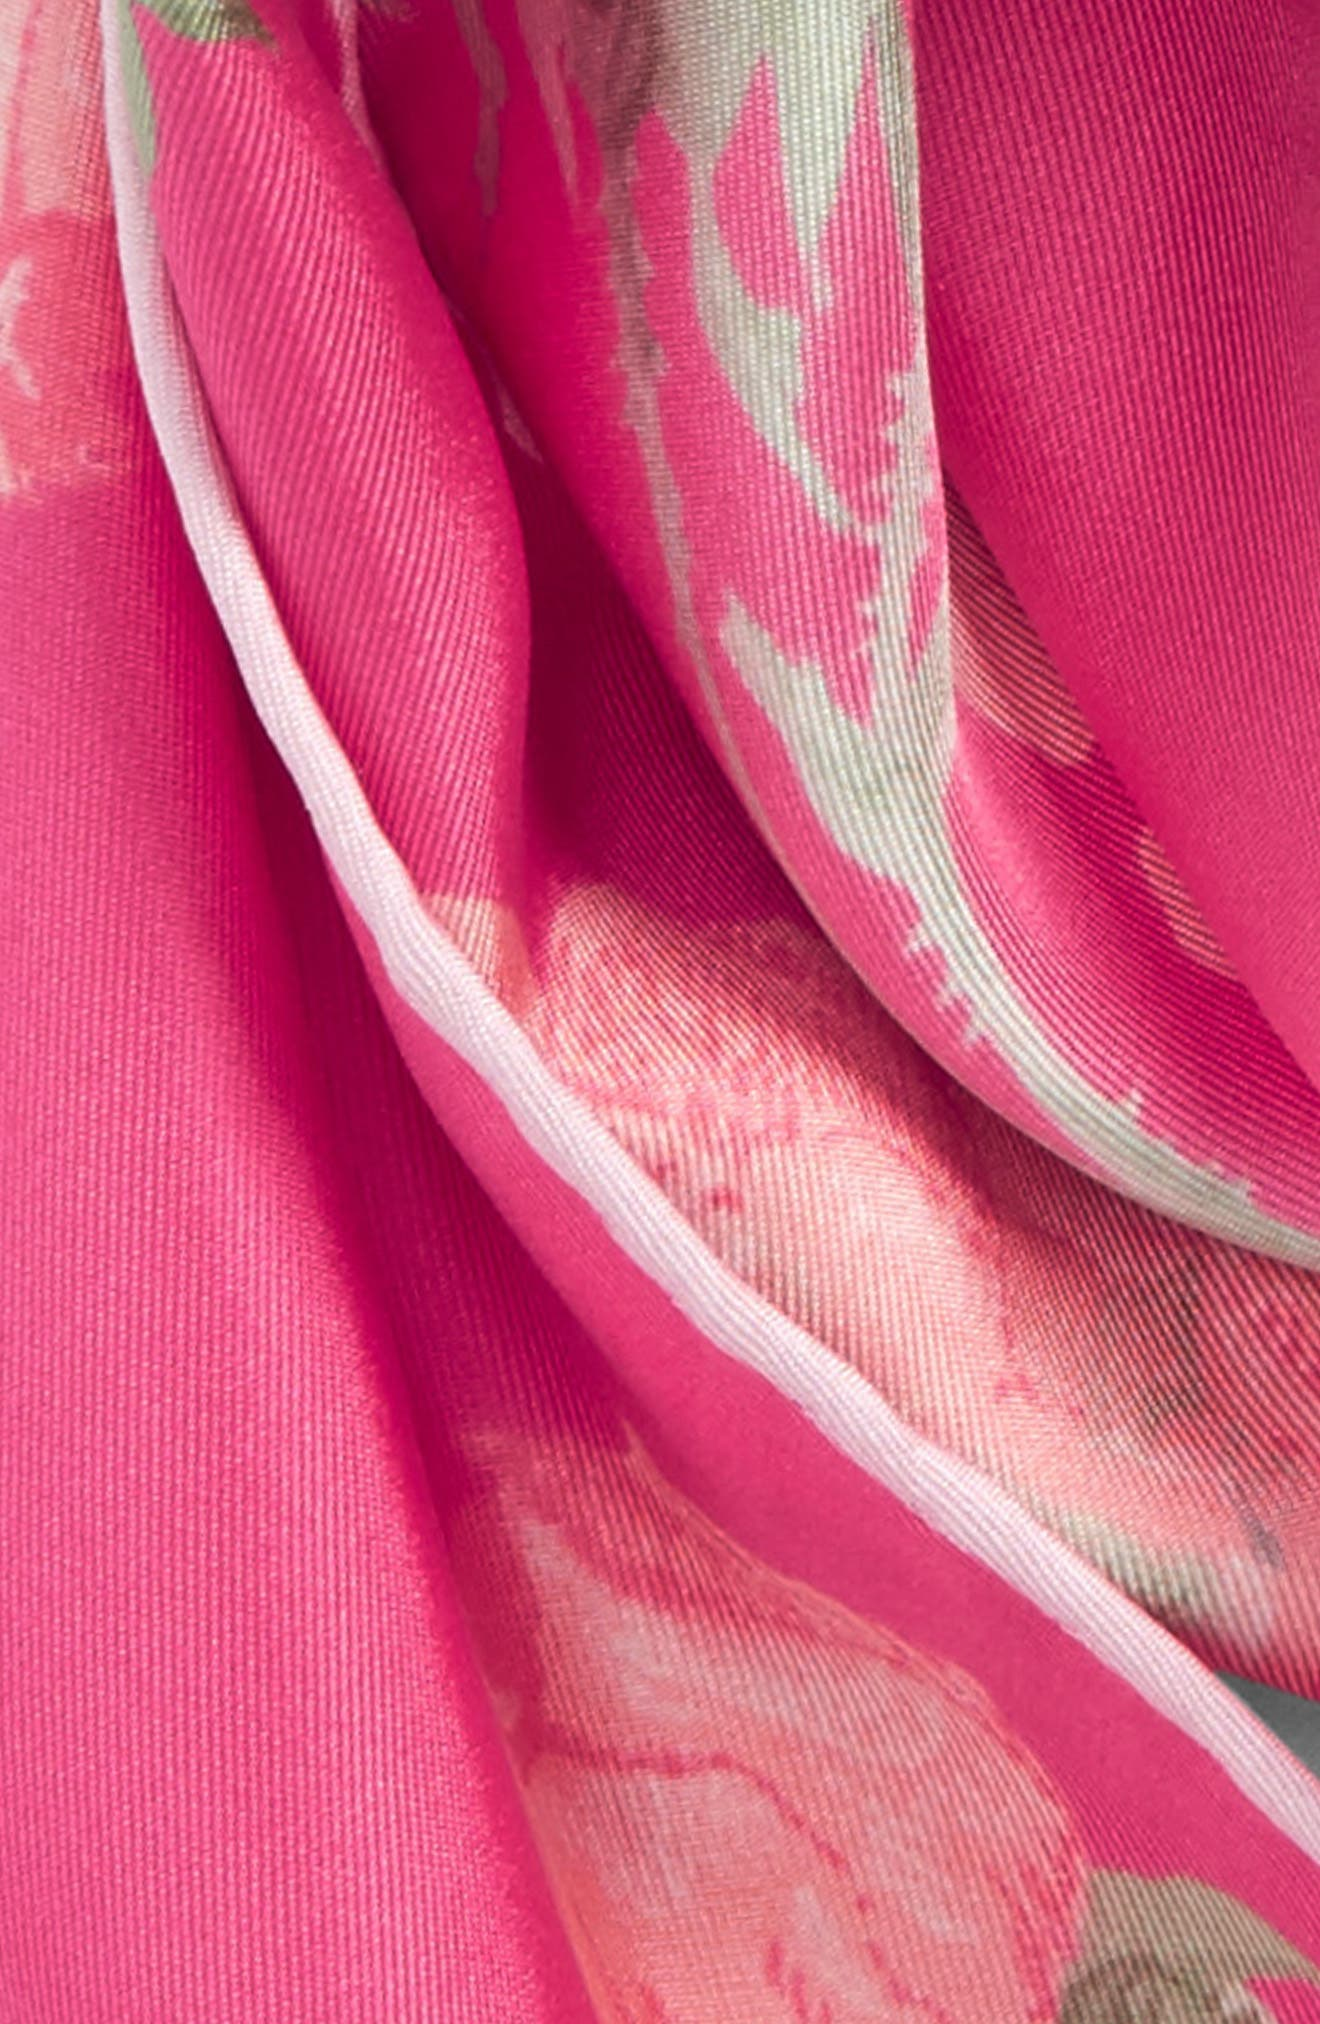 Garden Rose Losange Silk Twill Scarf,                             Alternate thumbnail 3, color,                             Fuxia/ Pink